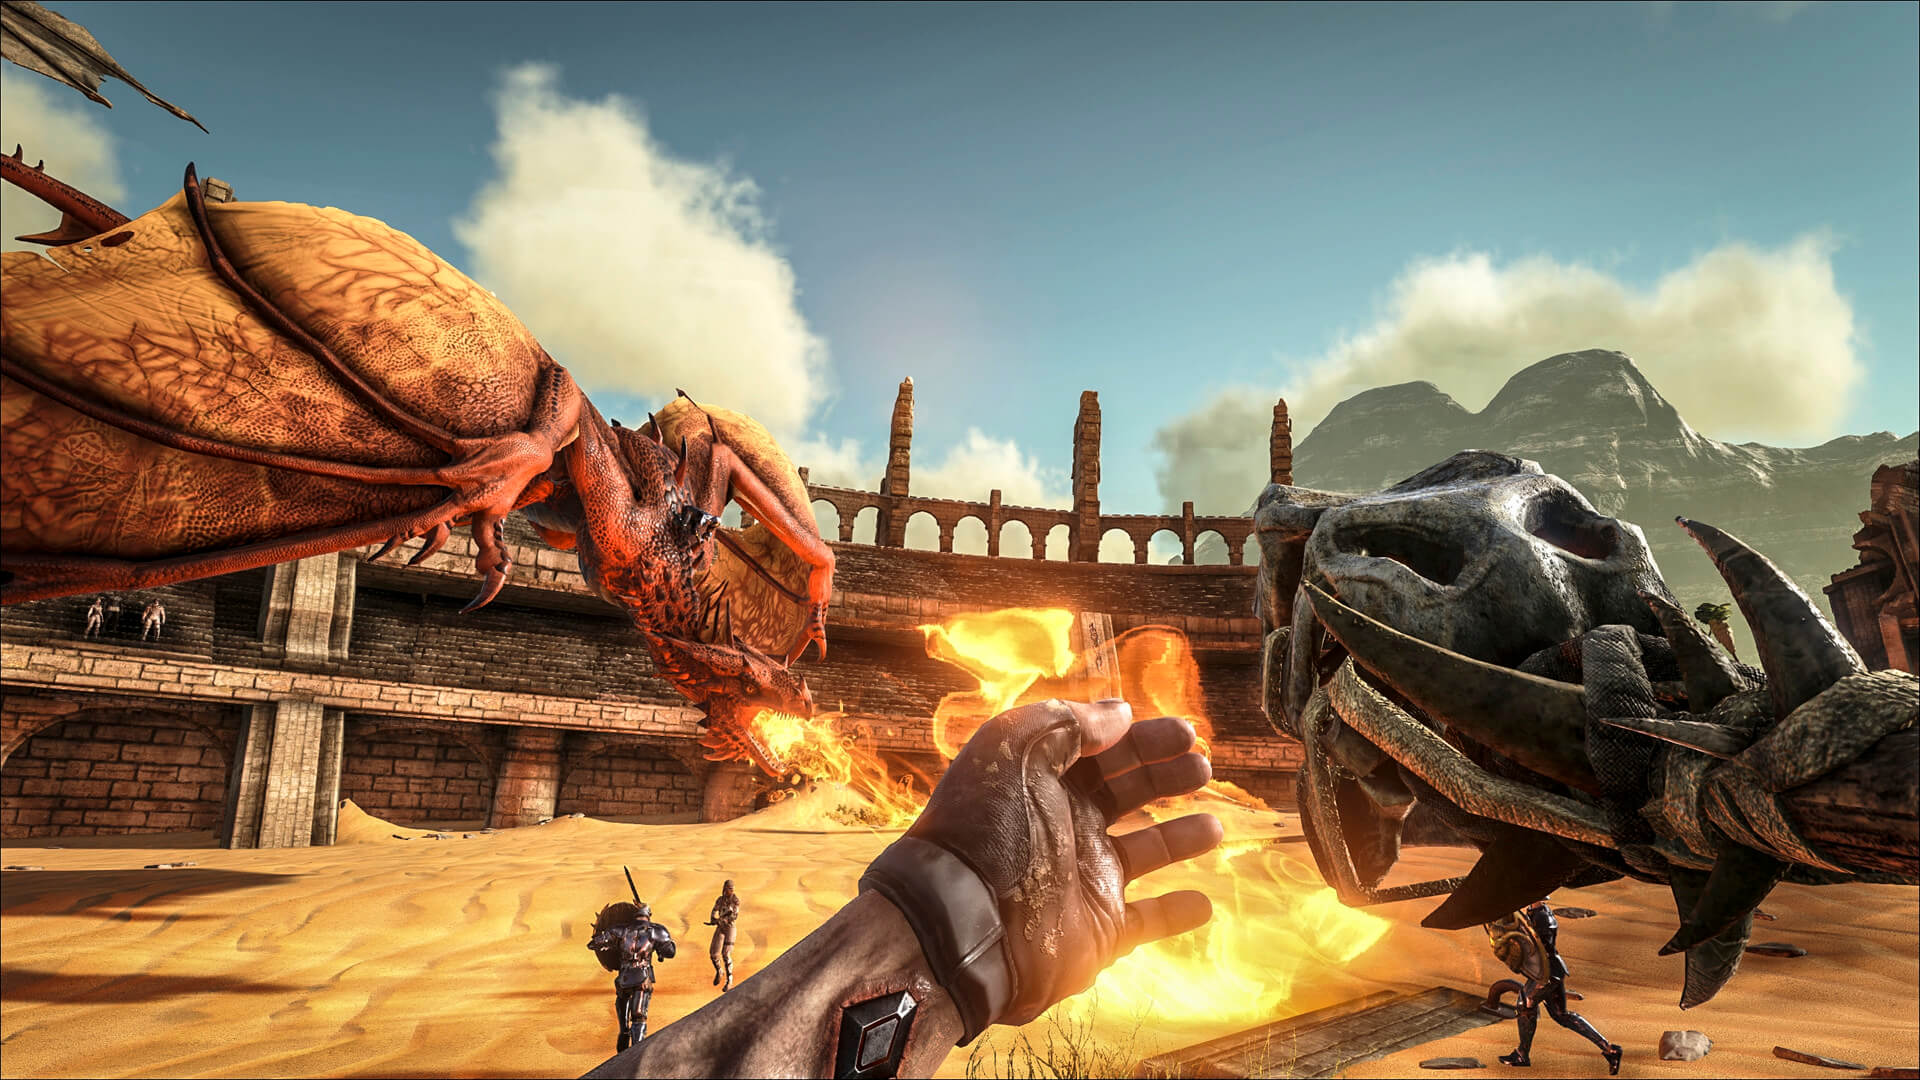 Ark scorched earth console commands and cheats survive ark malvernweather Choice Image